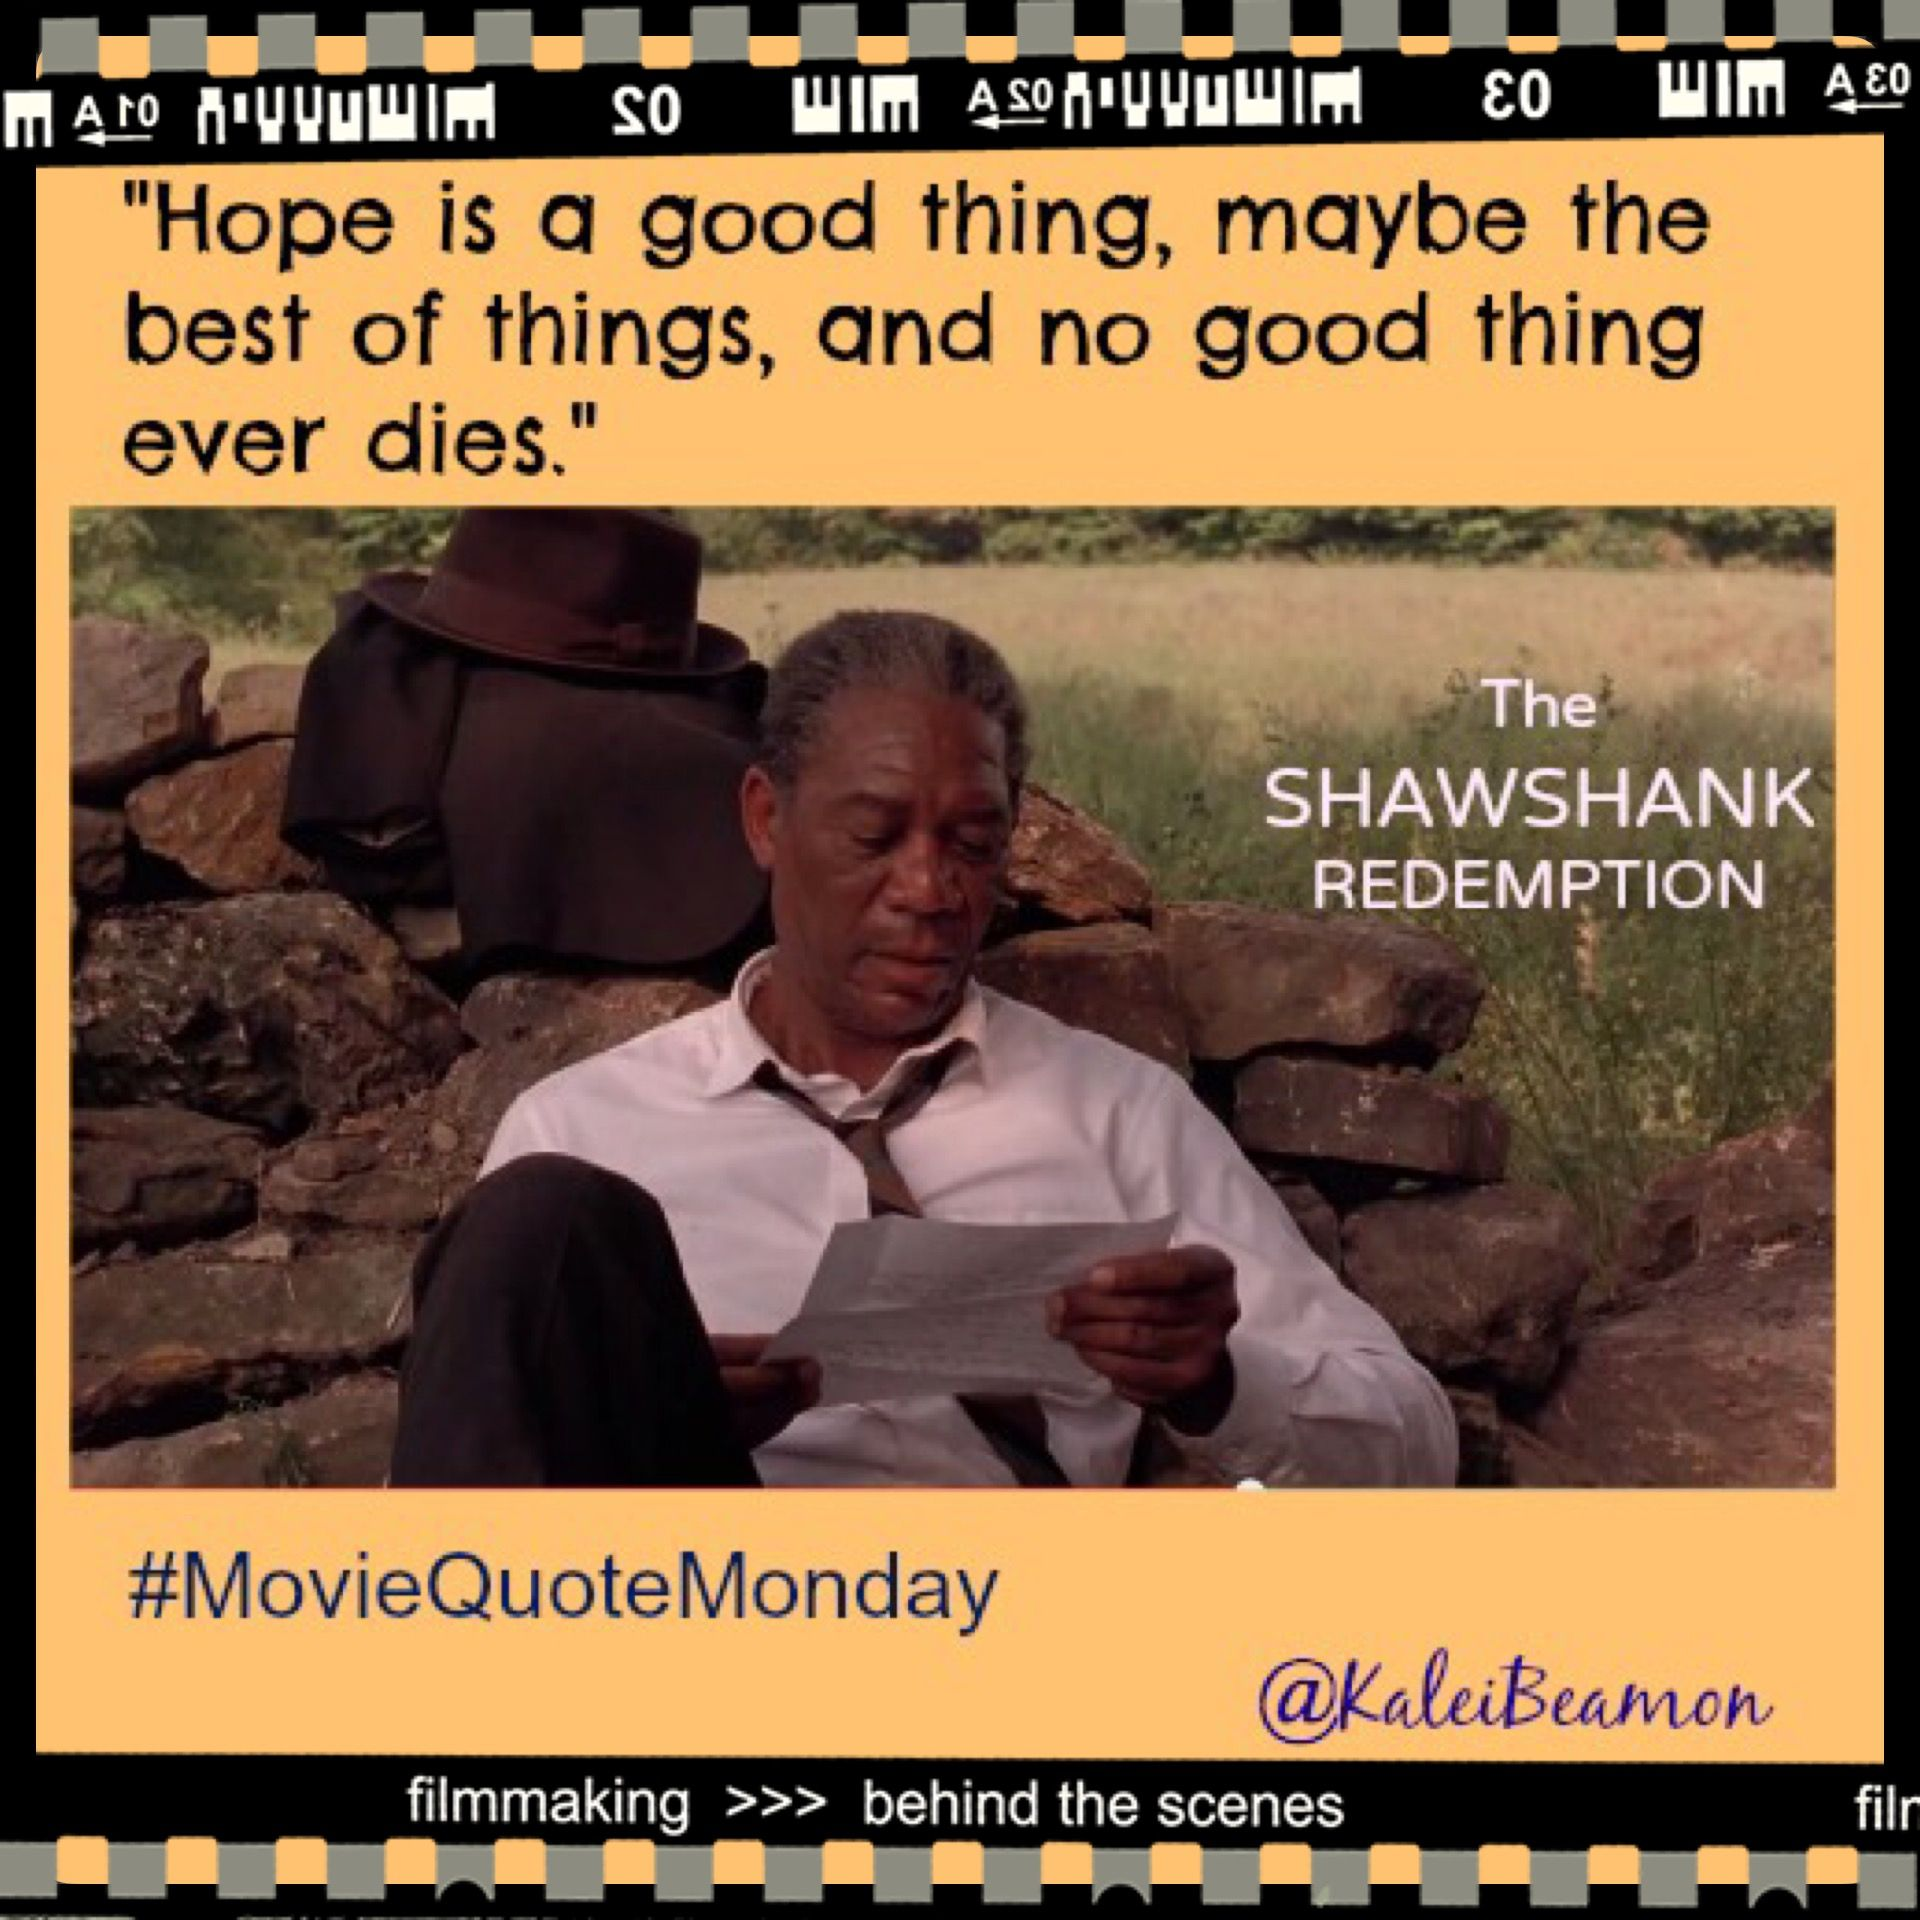 an analysis of the shawshank redemption and the crucible Topics: the shawshank redemption, frank darabont, rita hayworth and shawshank redemption pages: 2 (777 words) published: april 6, 2007 the shawshank redemption while darabont's film the shawshank redemption presents a sense of resolved conflict at the end, it seems that darabont has used the mis-en-scene to express a series of.